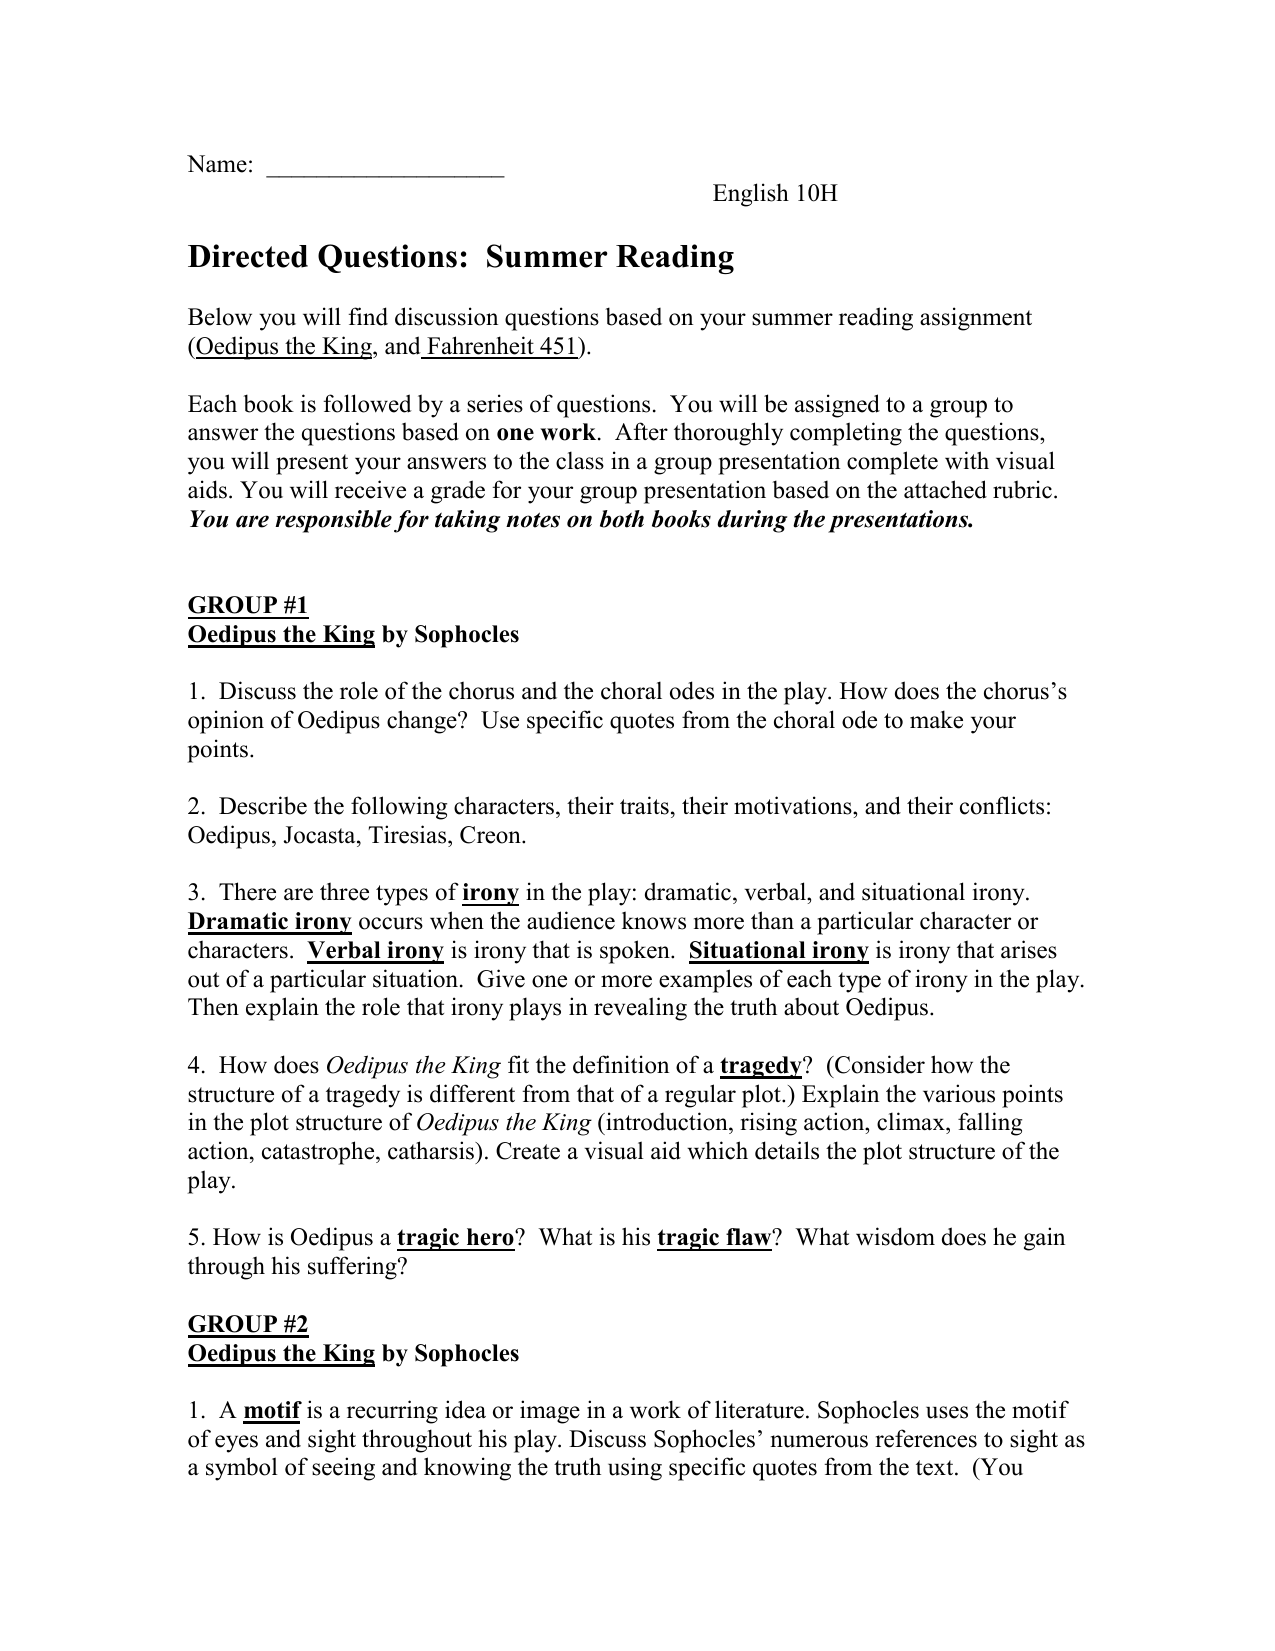 Summer Reading Group Questions